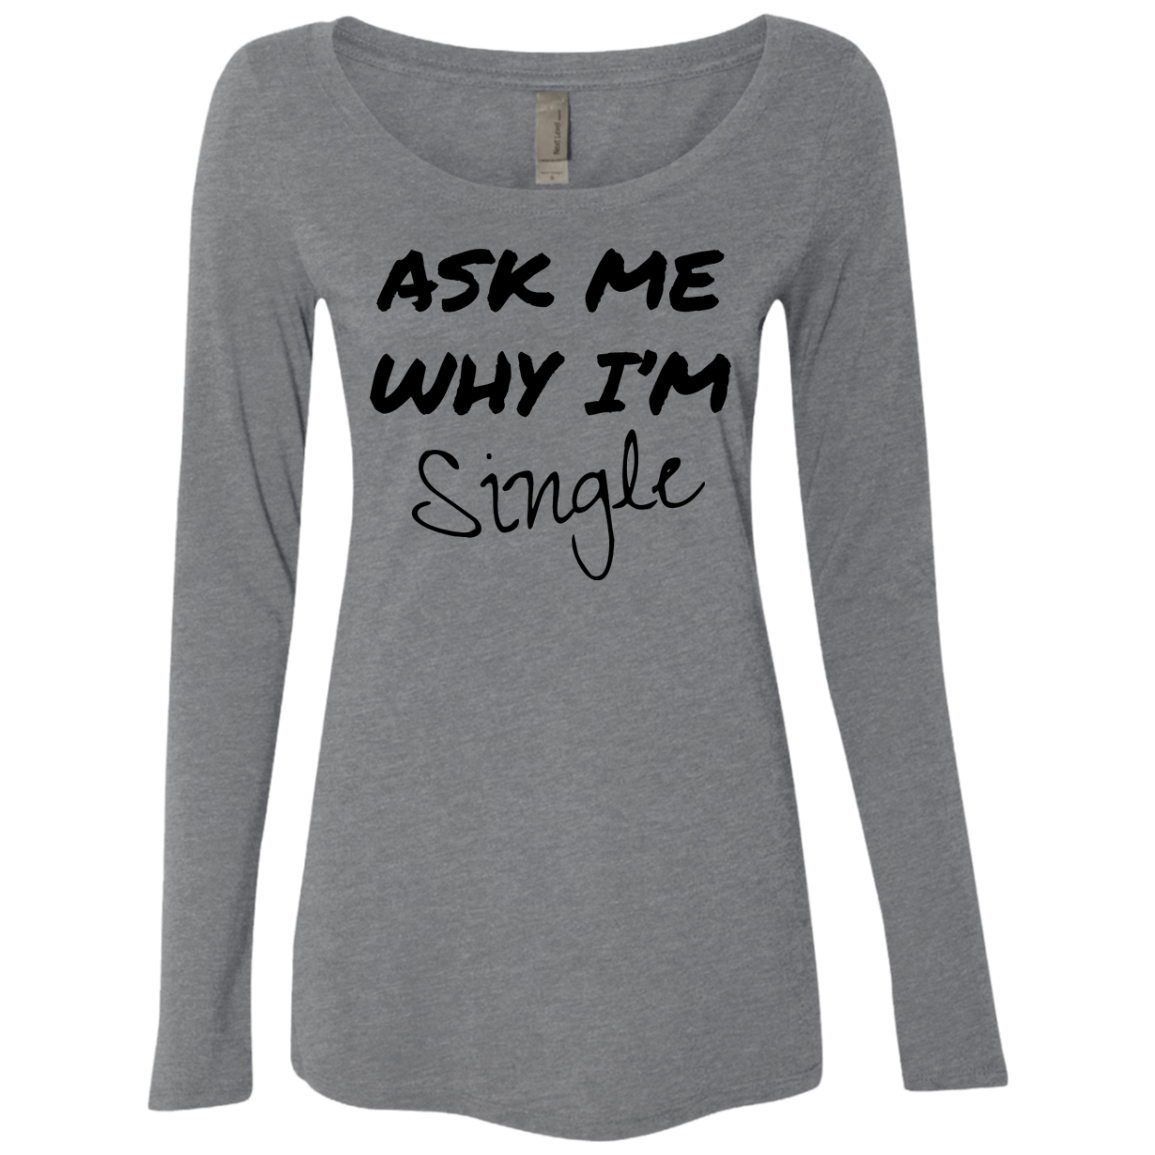 Ask Me Why I'm Single Women's Long Sleeve Tee - Trendy Tees